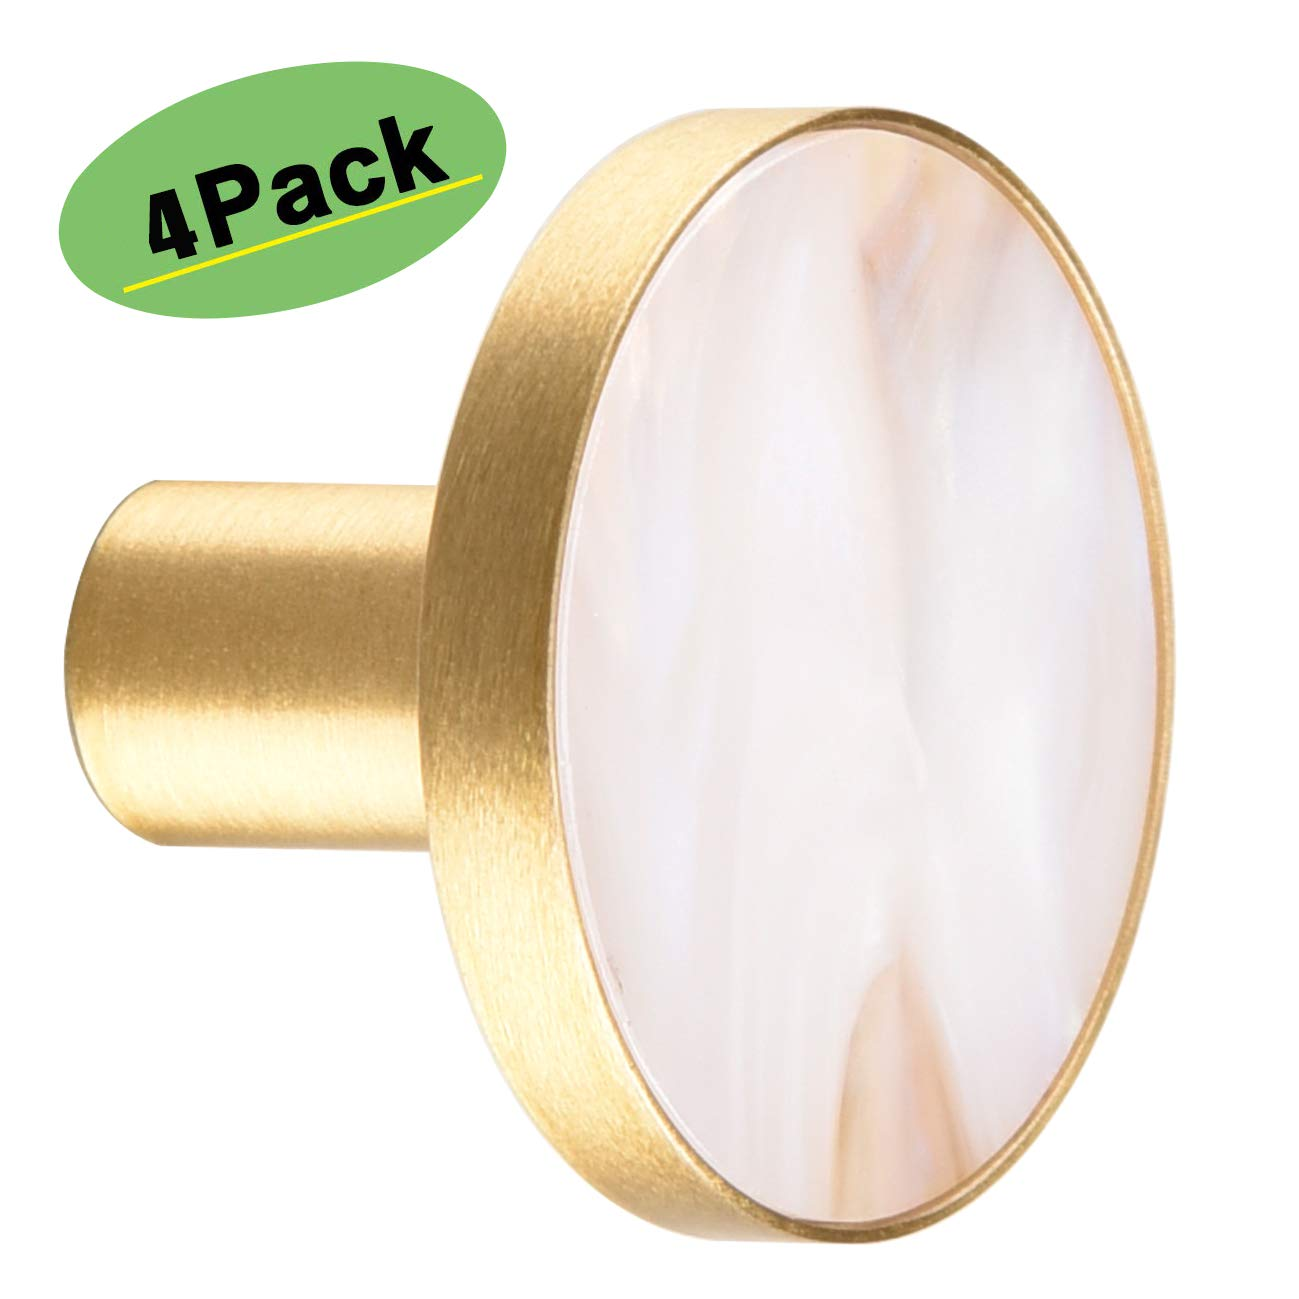 Qogrisun 4 Pack Premium Solid Brass Round Cabinet Hardware Knobs Cupboard Pulls and Kitchen Drawer 1.3inches/33mm Dia,Beige Shell